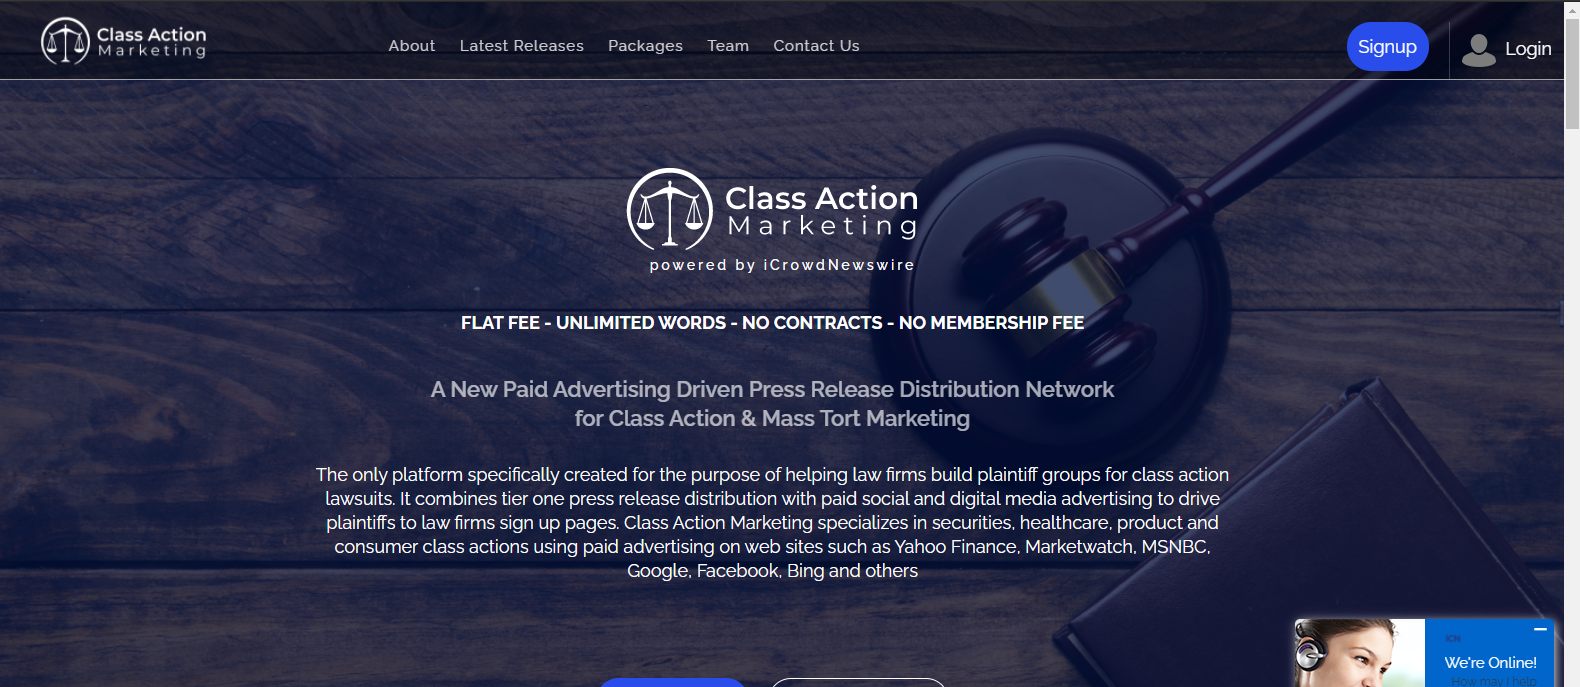 class action marketing